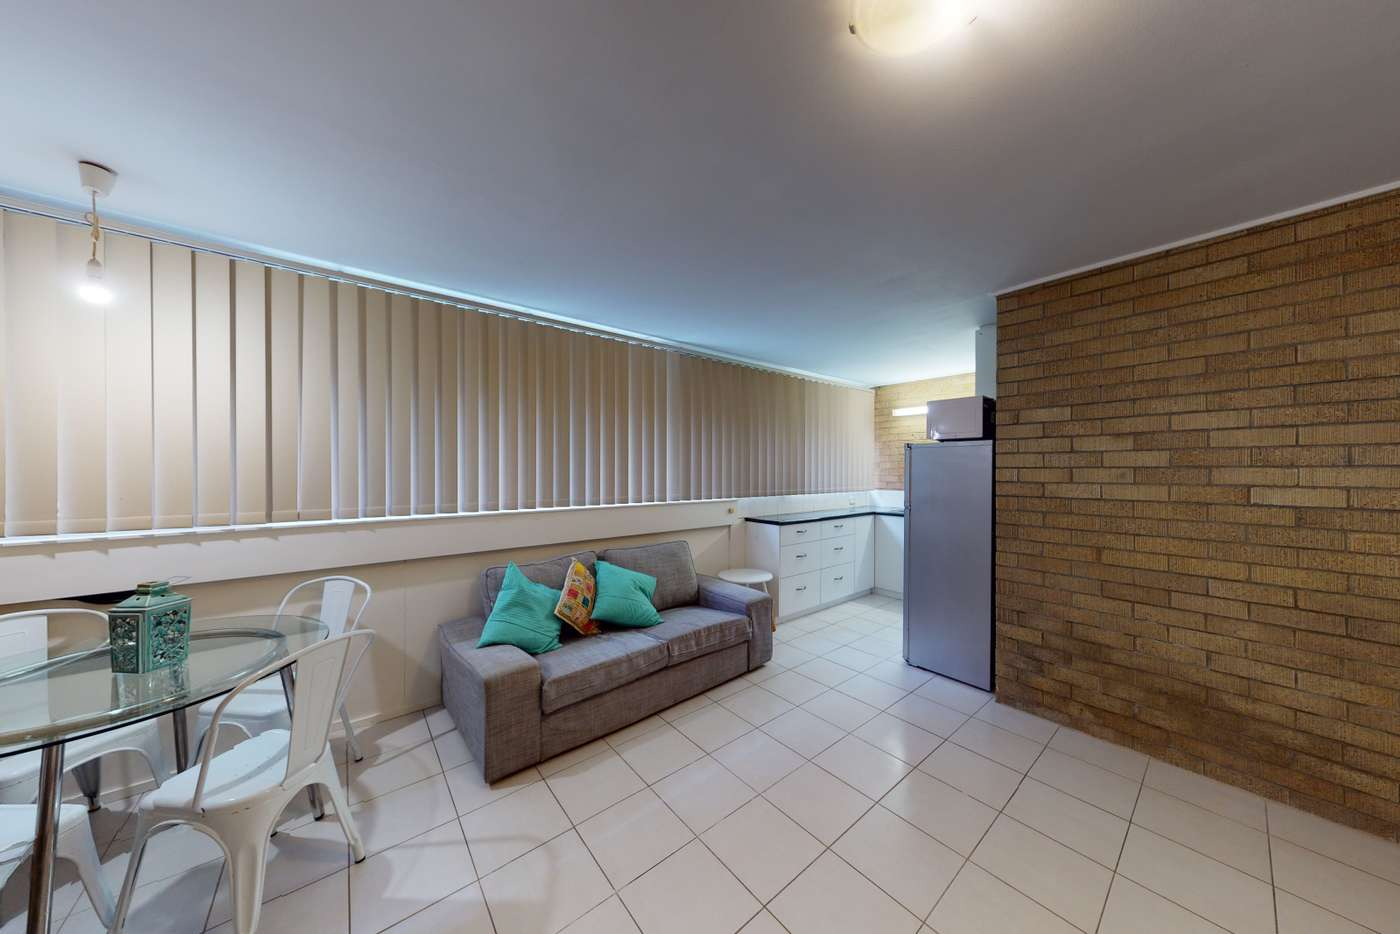 Main view of Homely unit listing, 12/59 Sandford Street, St Lucia QLD 4067